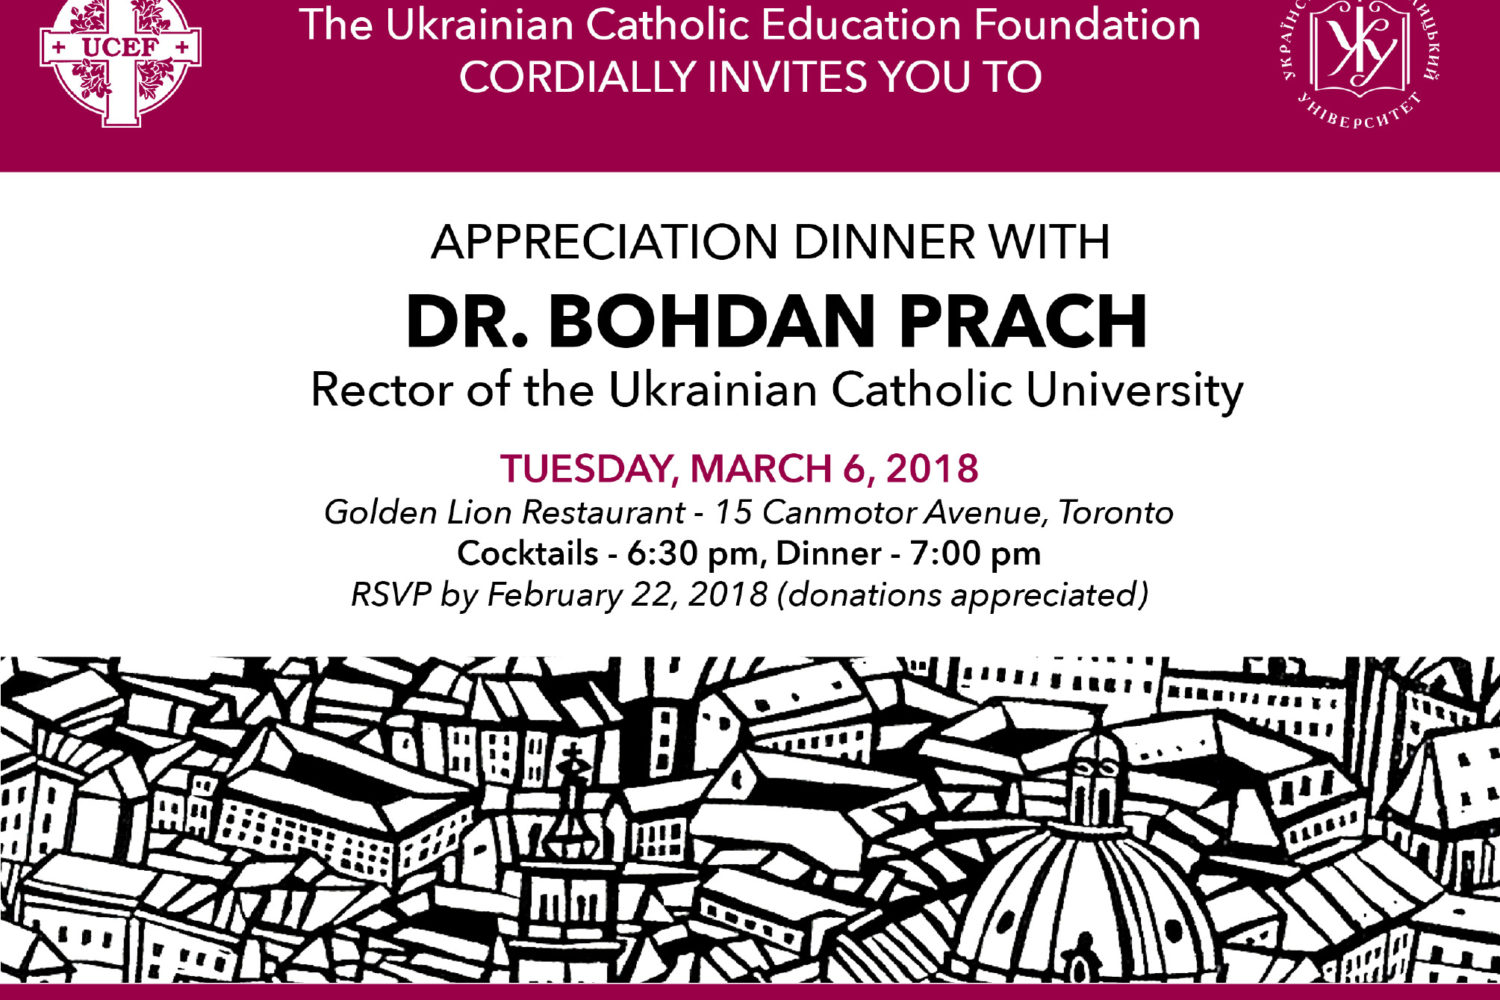 Appreciation Dinner with Dr. Bohdan Prach